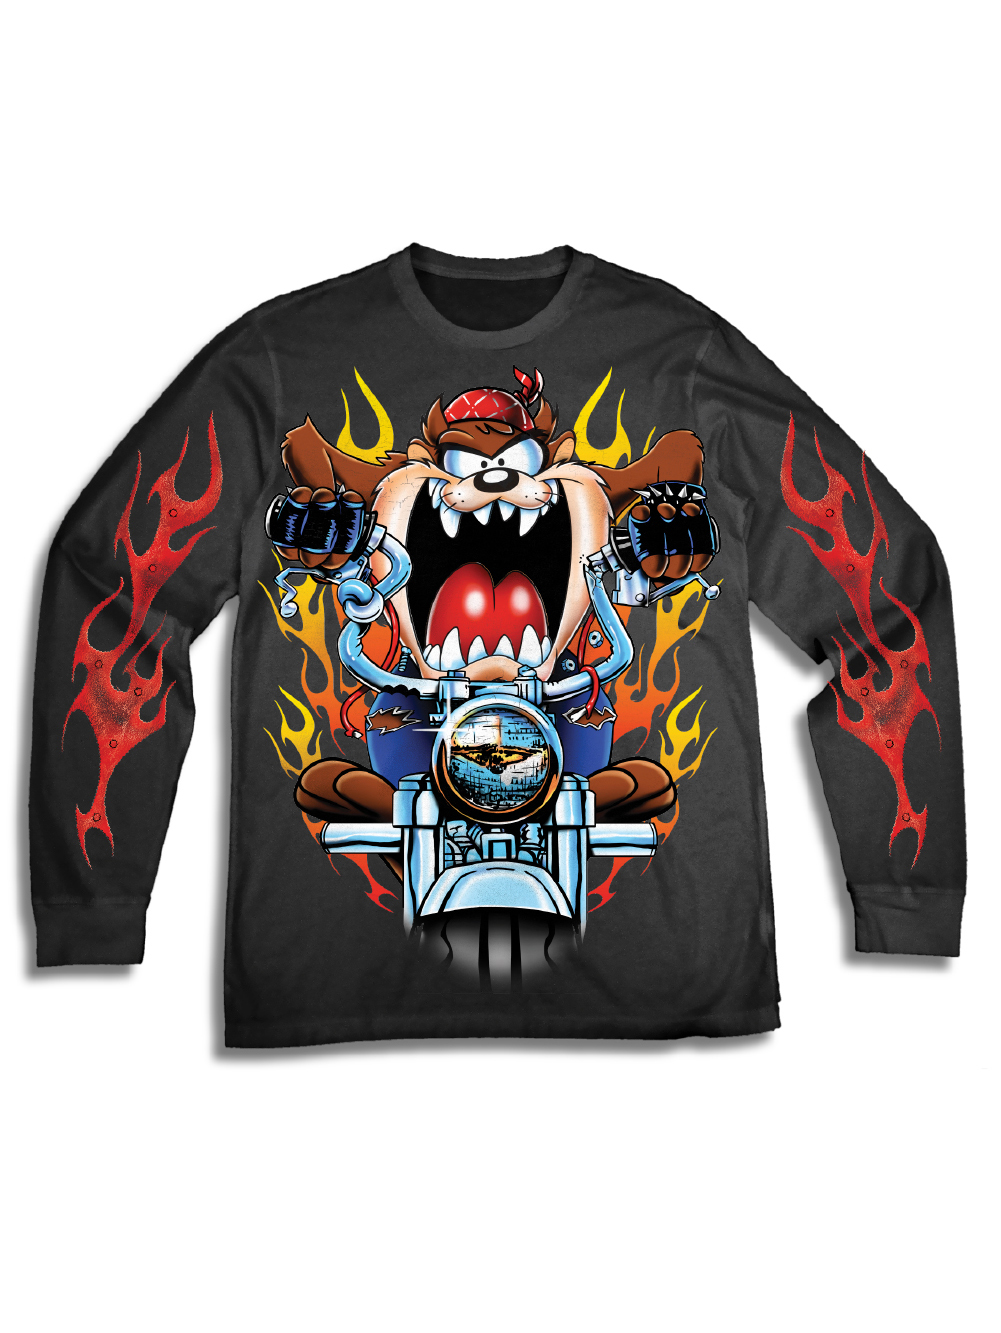 Looney Tunes Men's Taz Looney Tunes Long Sleeve Graphic Tee with Sleeve Prints